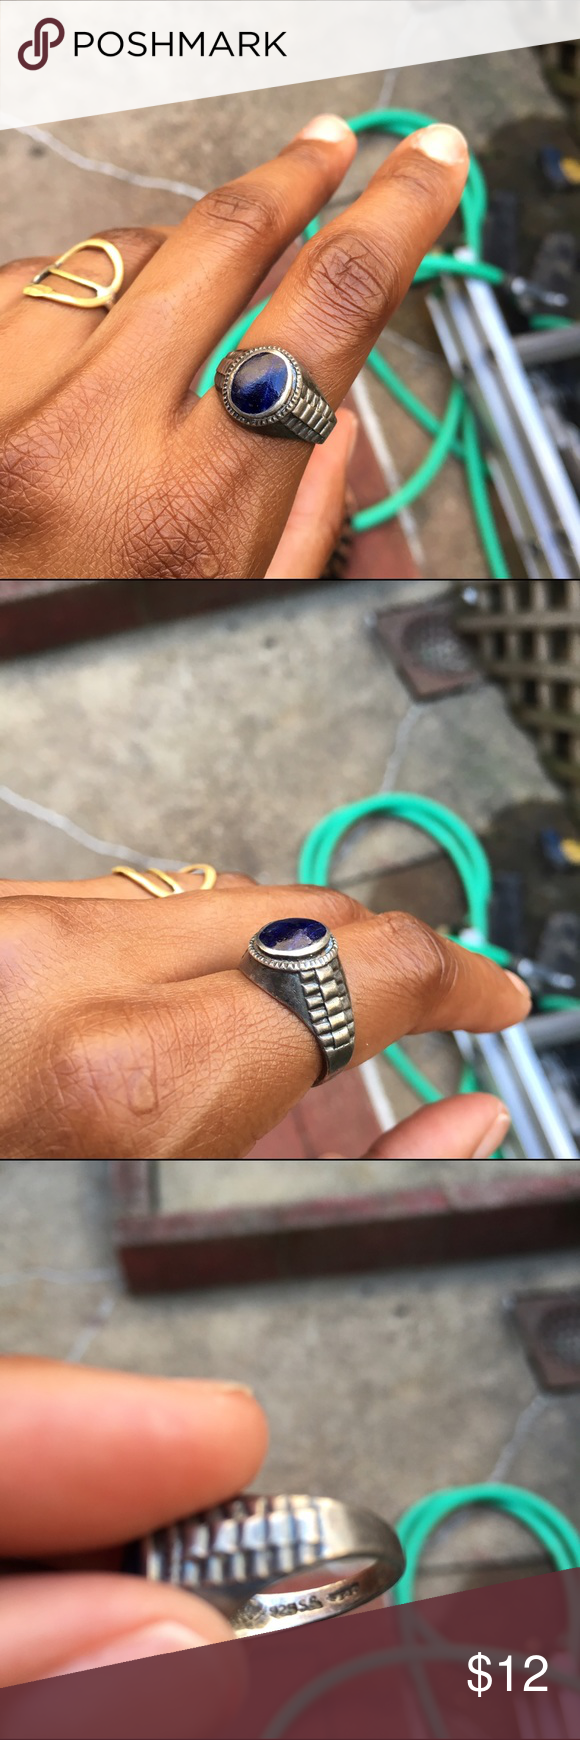 VINTAGE || Sterling Silver w/ Lapis Stone Ring Sz6 VINTAGE || .925 Sterling Silver w/ Lapis Stone Ring Sz6 Needs Polishing. Sized measured by local jeweler Vintage Jewelry Rings